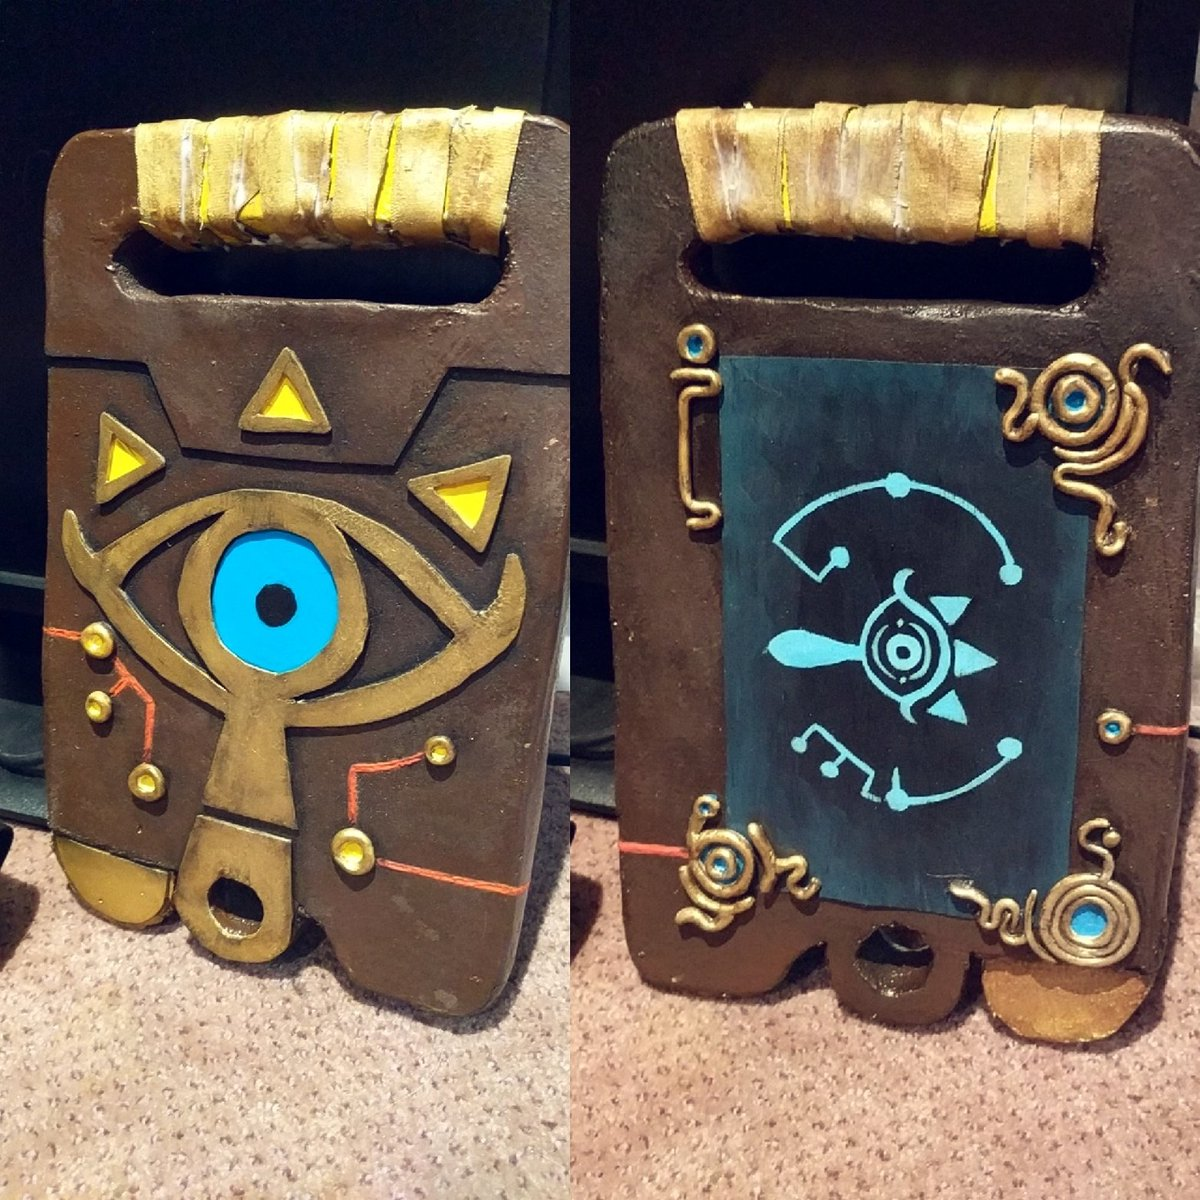 Got my sheikah slate ready to go for #an2017 !! #BOTW #botwcosplay #loz <br>http://pic.twitter.com/2031Fv6bS9